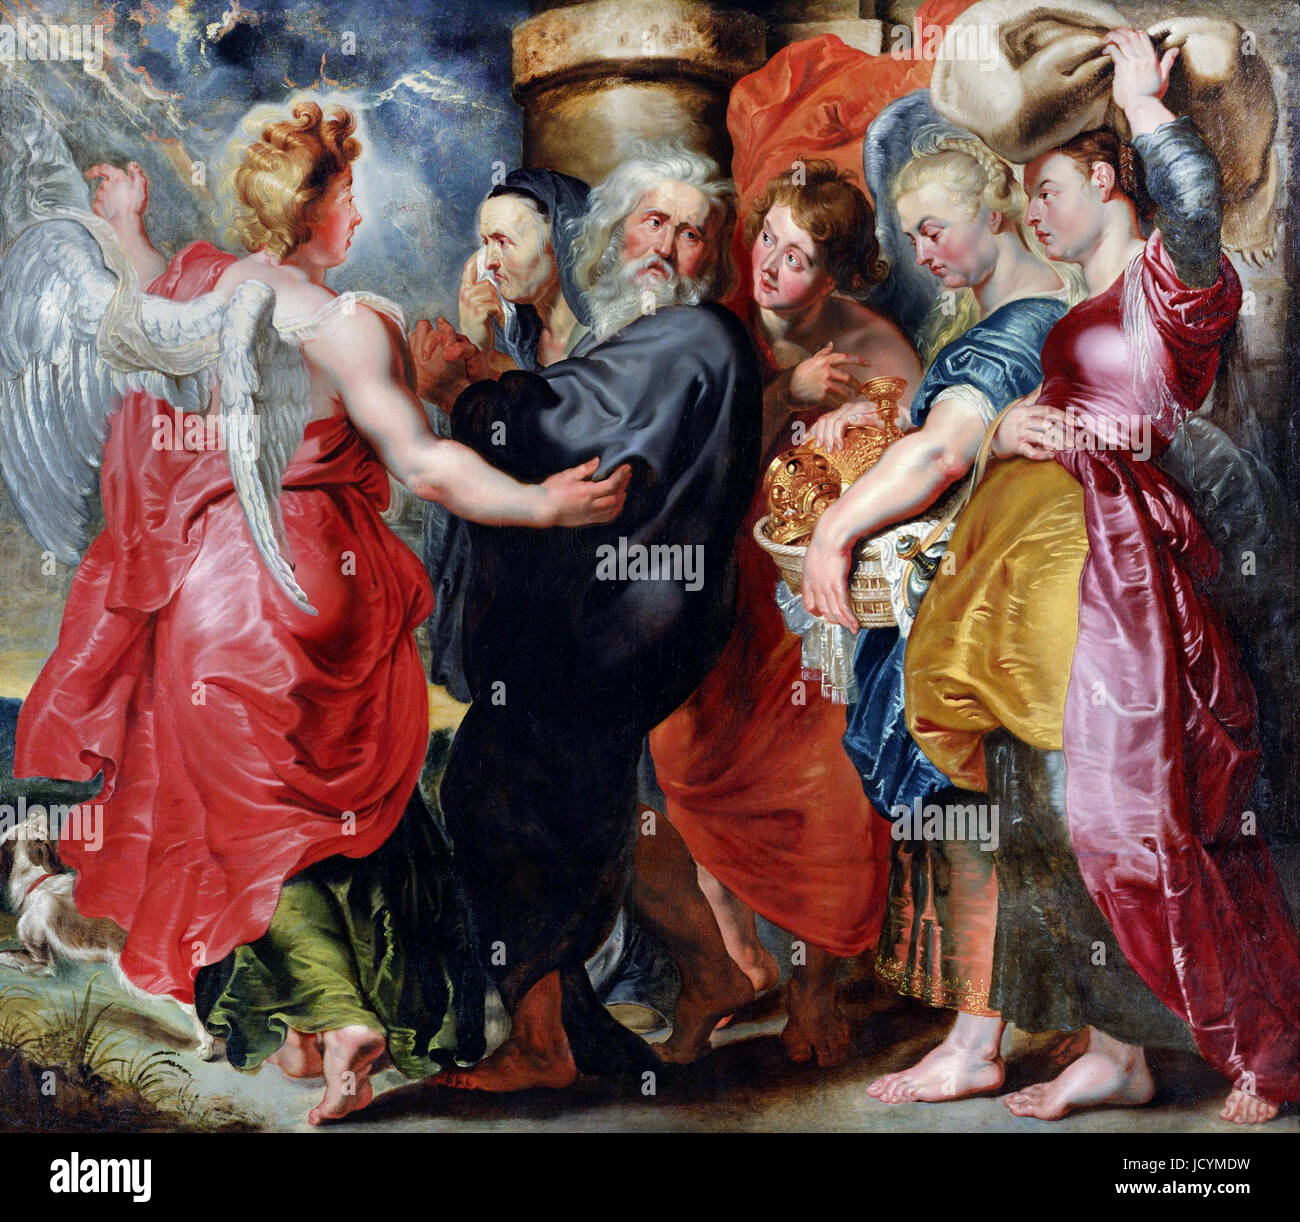 Jacob Jordaens, The Flight of Lot and His Family from Sodom (after Rubens). Circa 1618-20. Oil on canvas. National - Stock Image